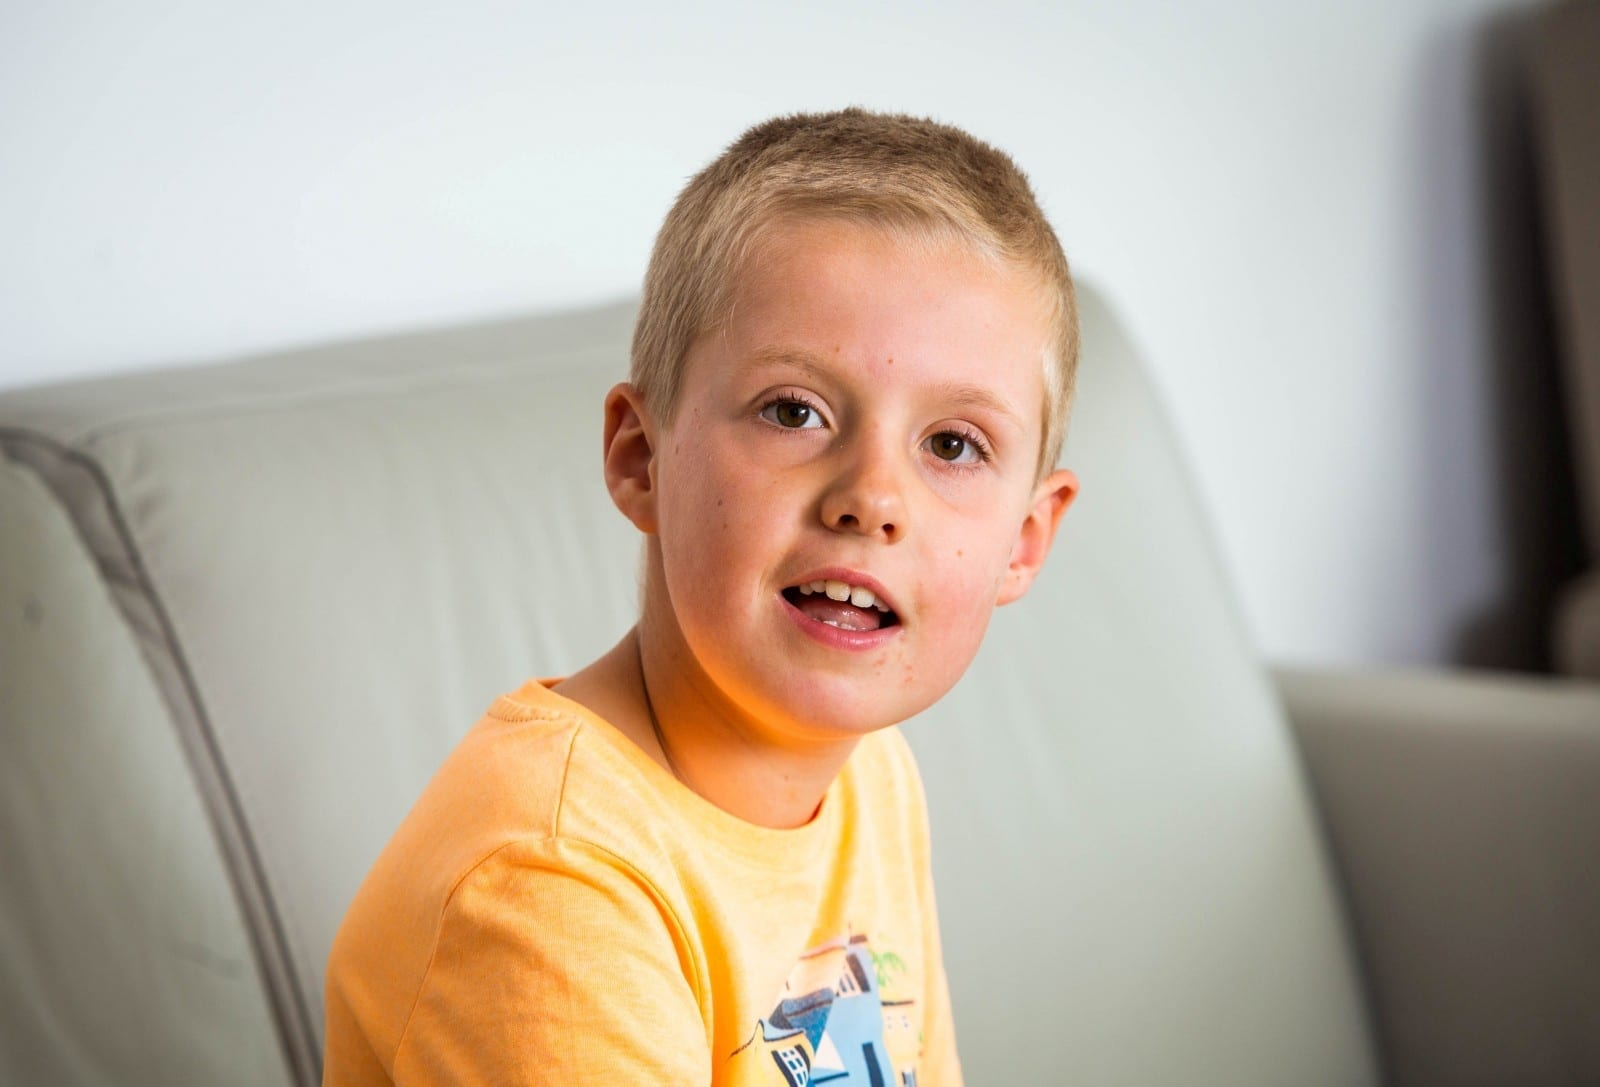 Boy With Rare Genetic Disorder That Is Slowly Killing Him Moves To Netherlands – As His Medicine Is Not Available On The NHS